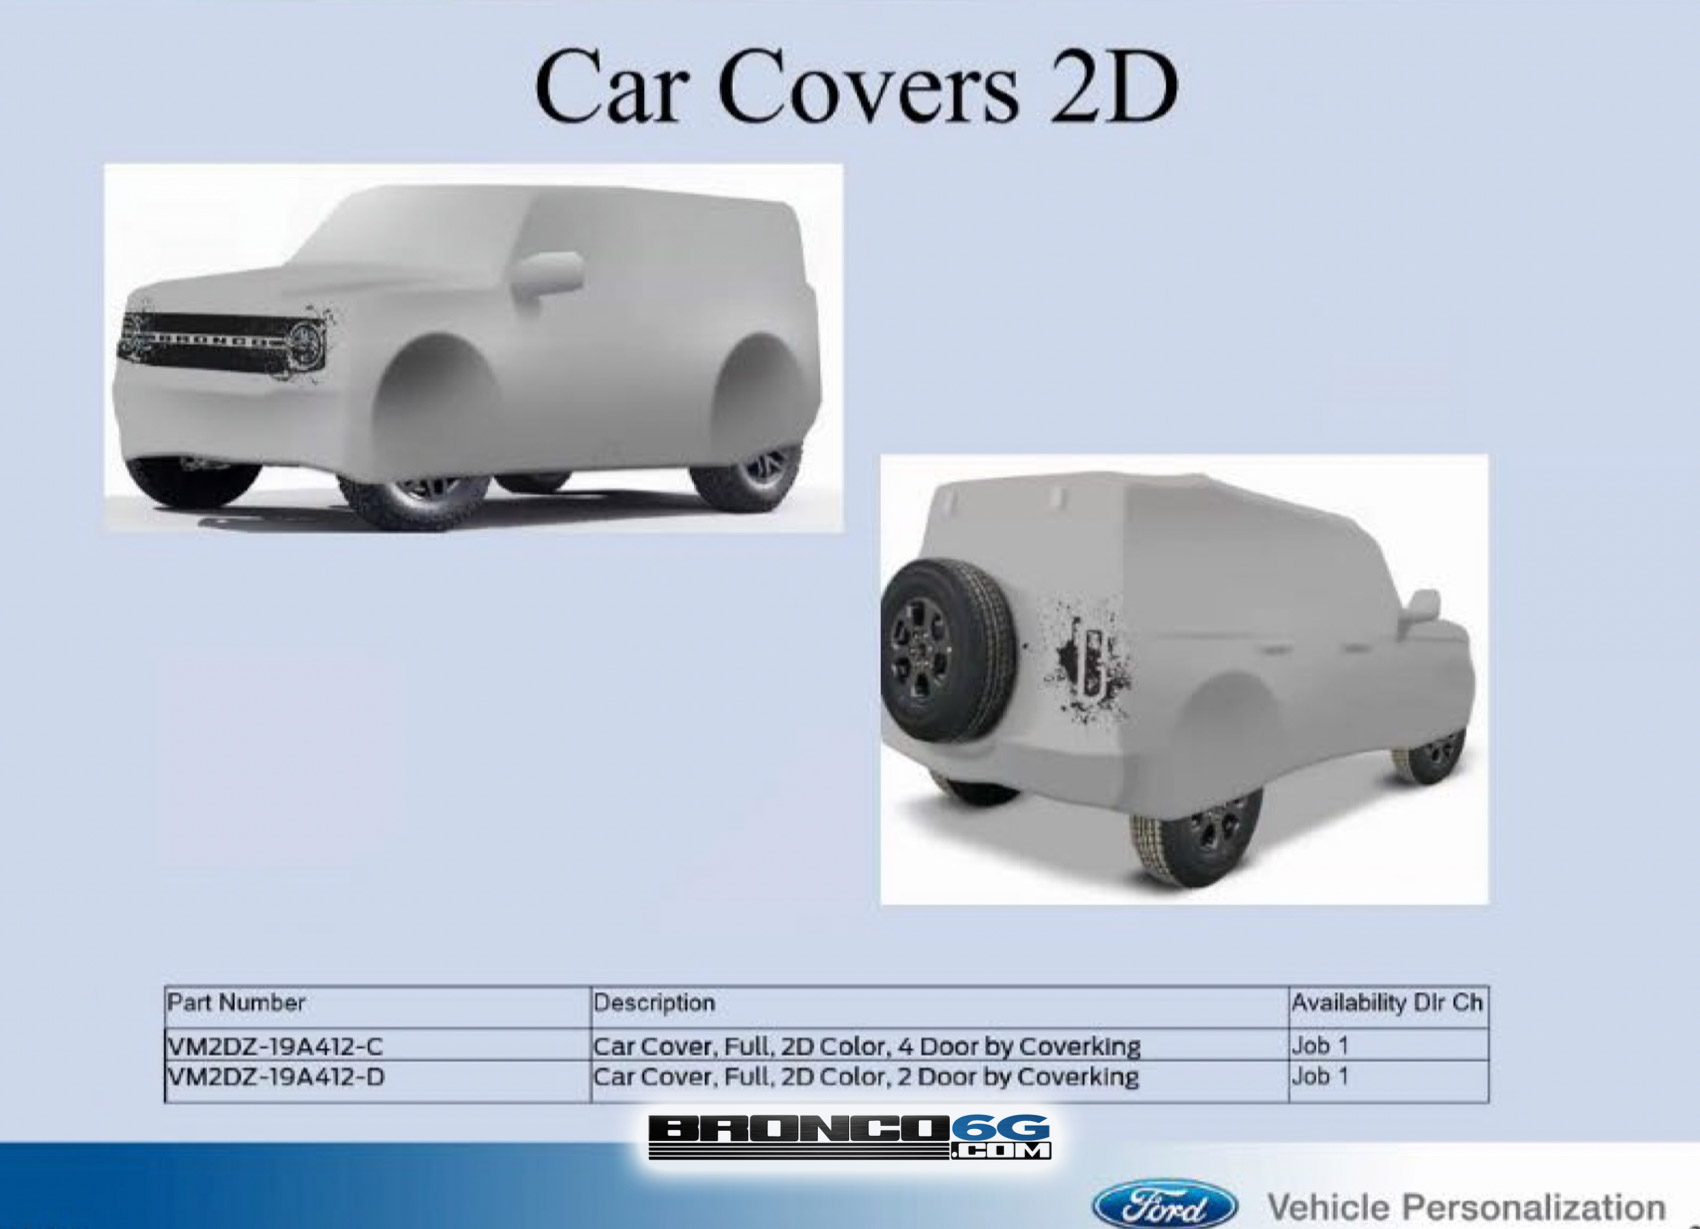 2021 Bronco Car Covers 2D - Ford Performance OEM factory accessory.jpg